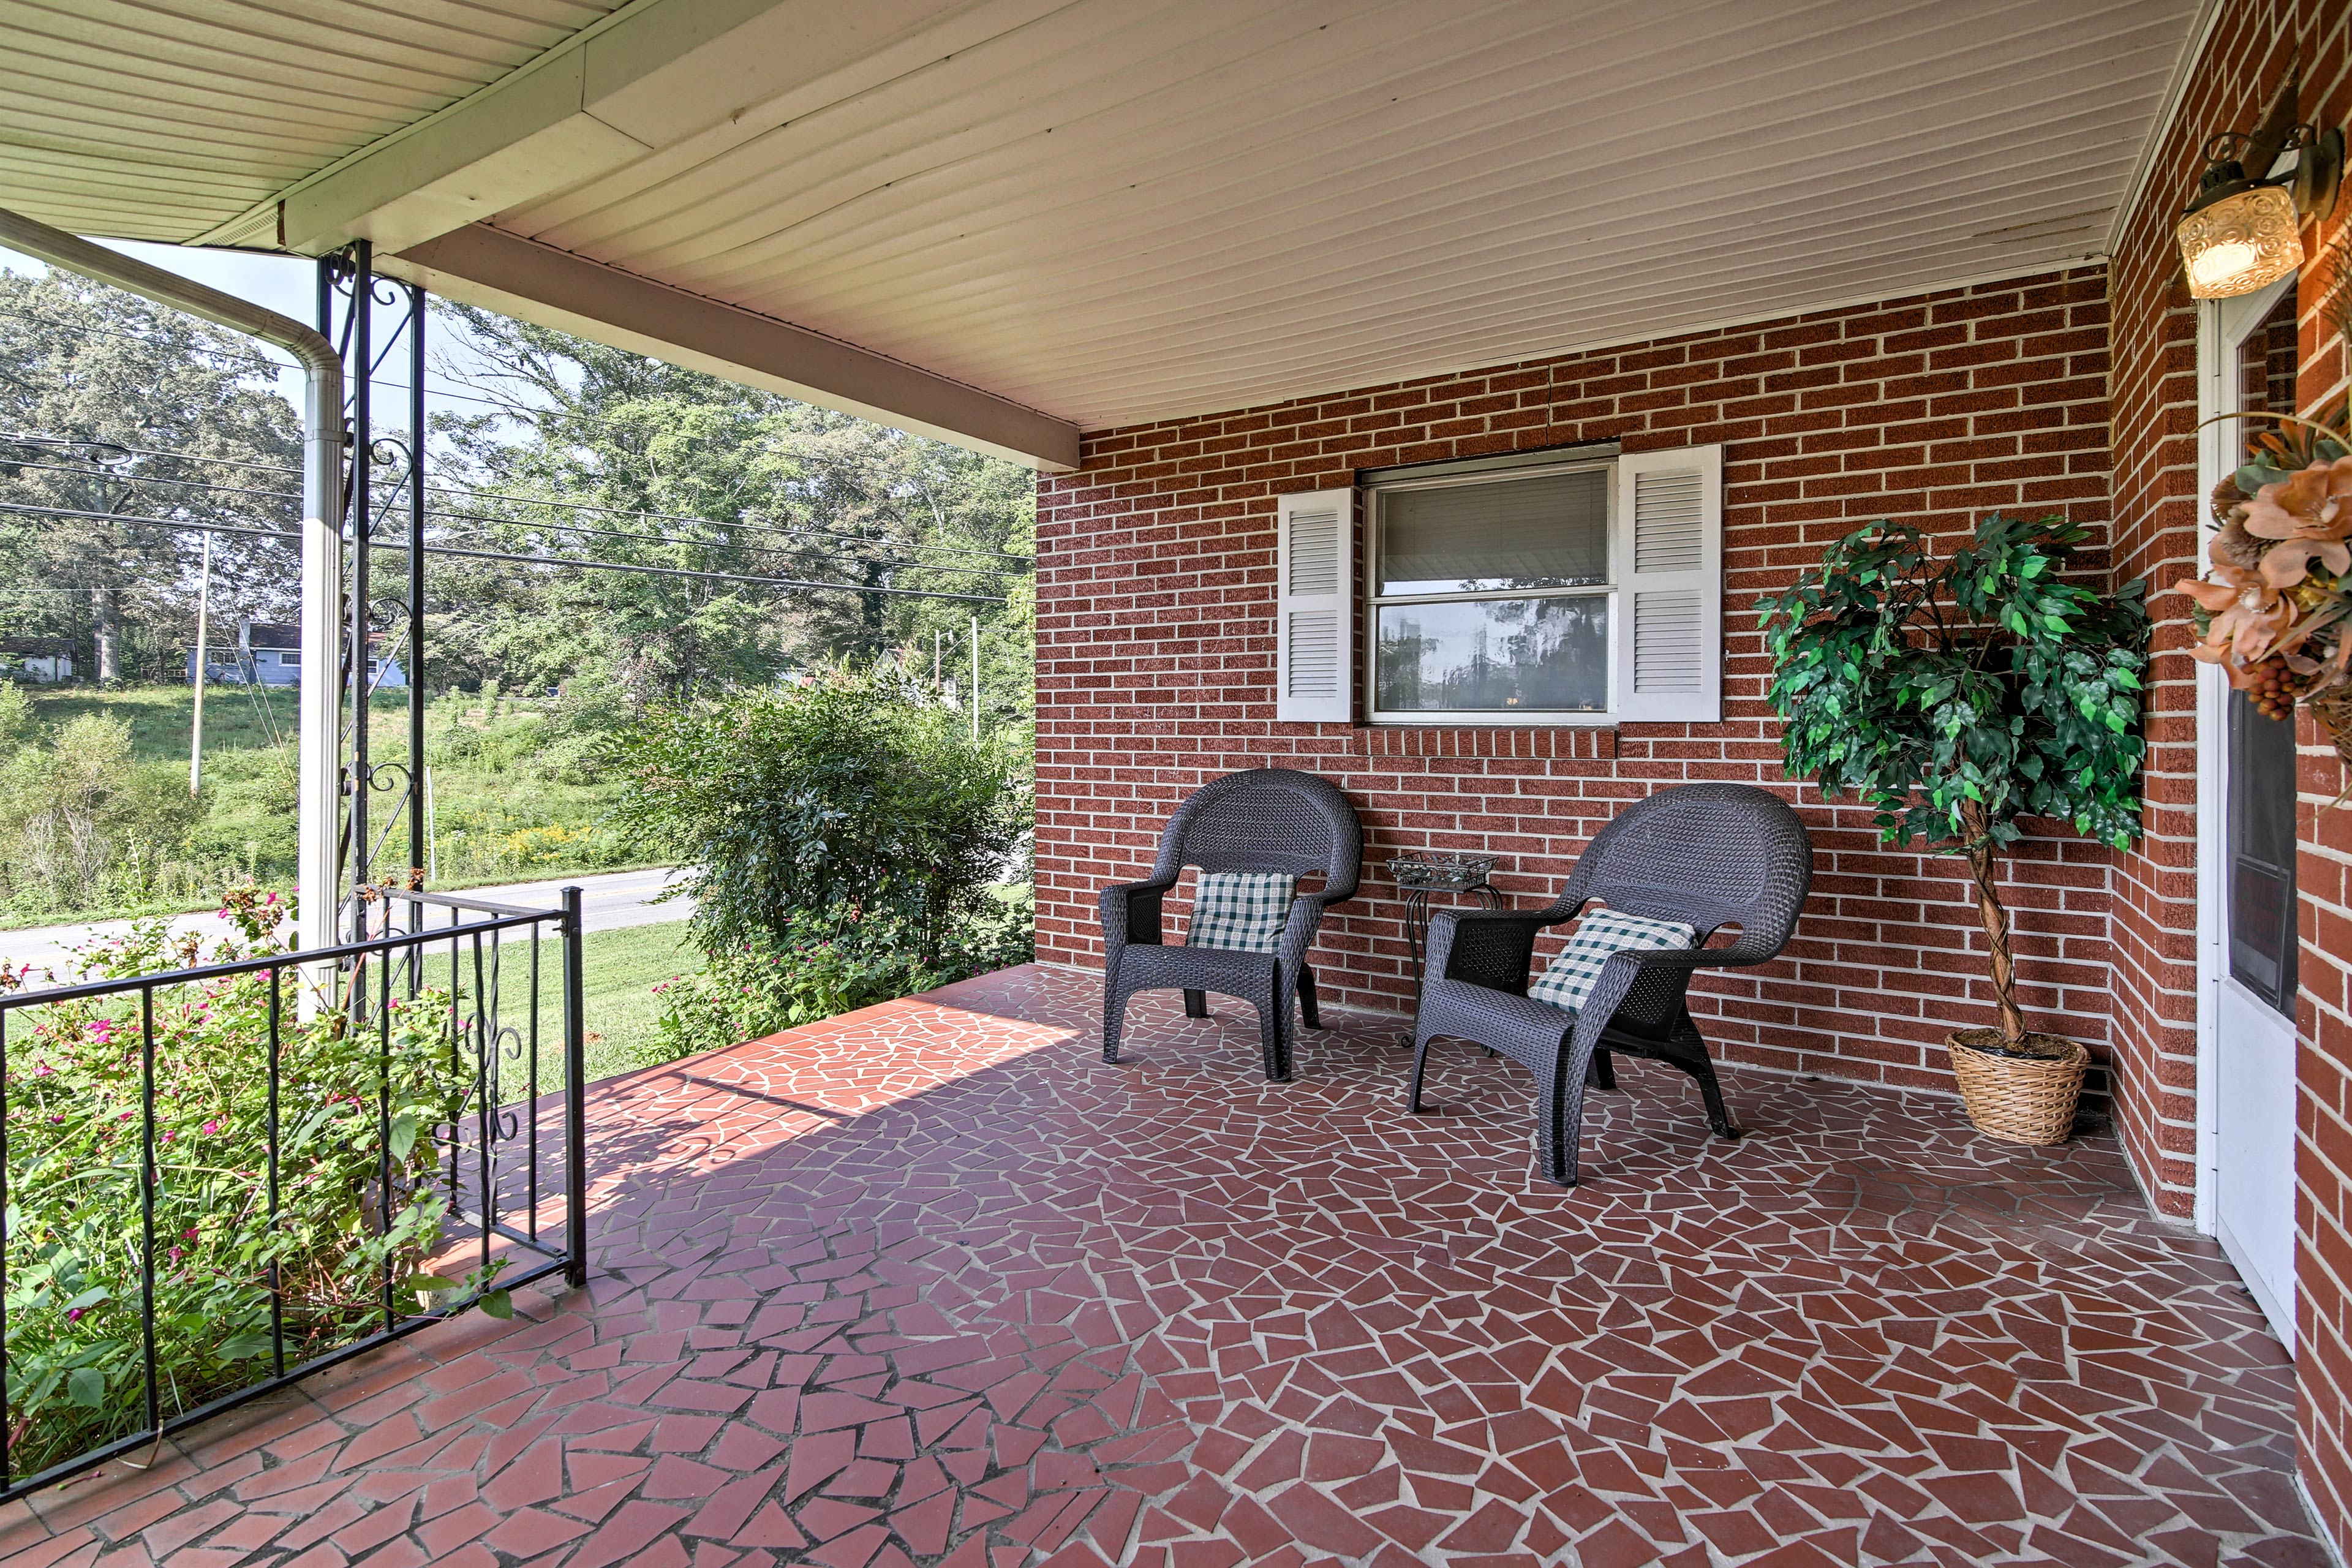 Take it easy on the spacious, covered front porch as you watch the world go by.